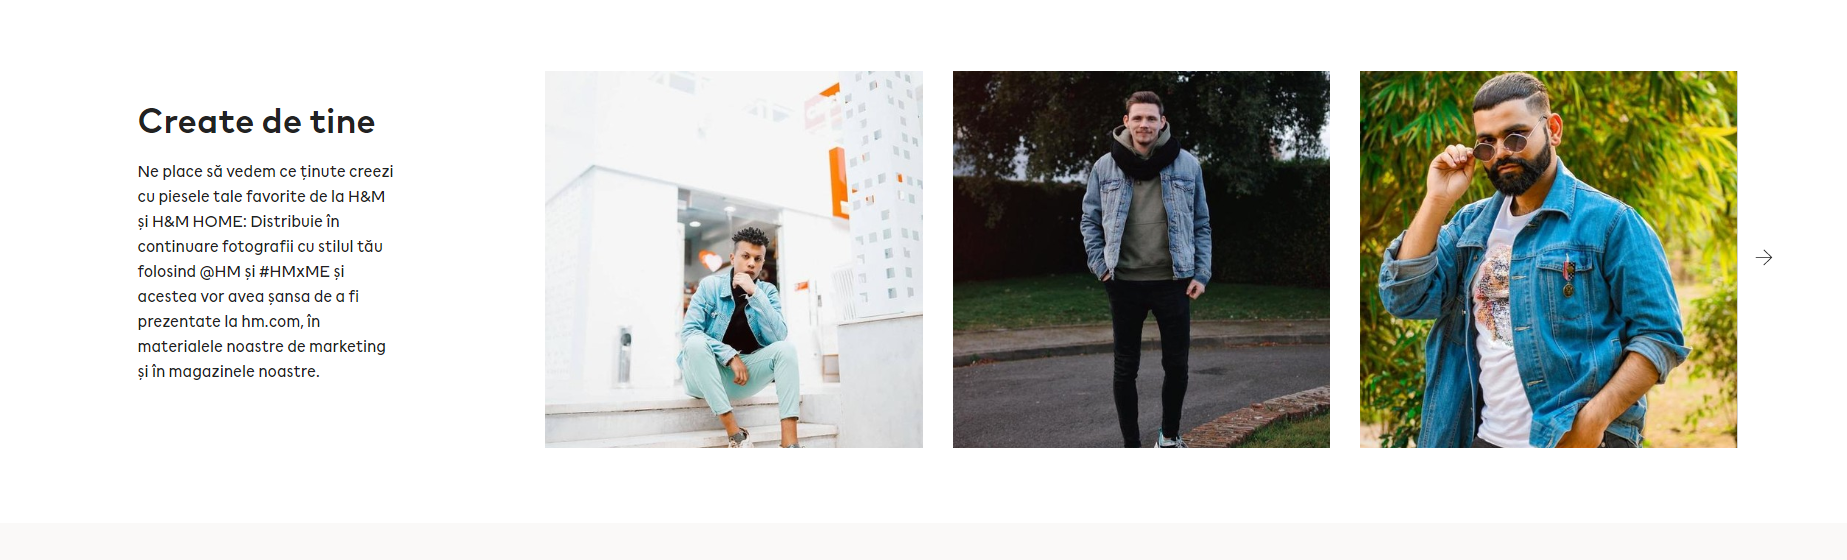 H&M user-generated content example